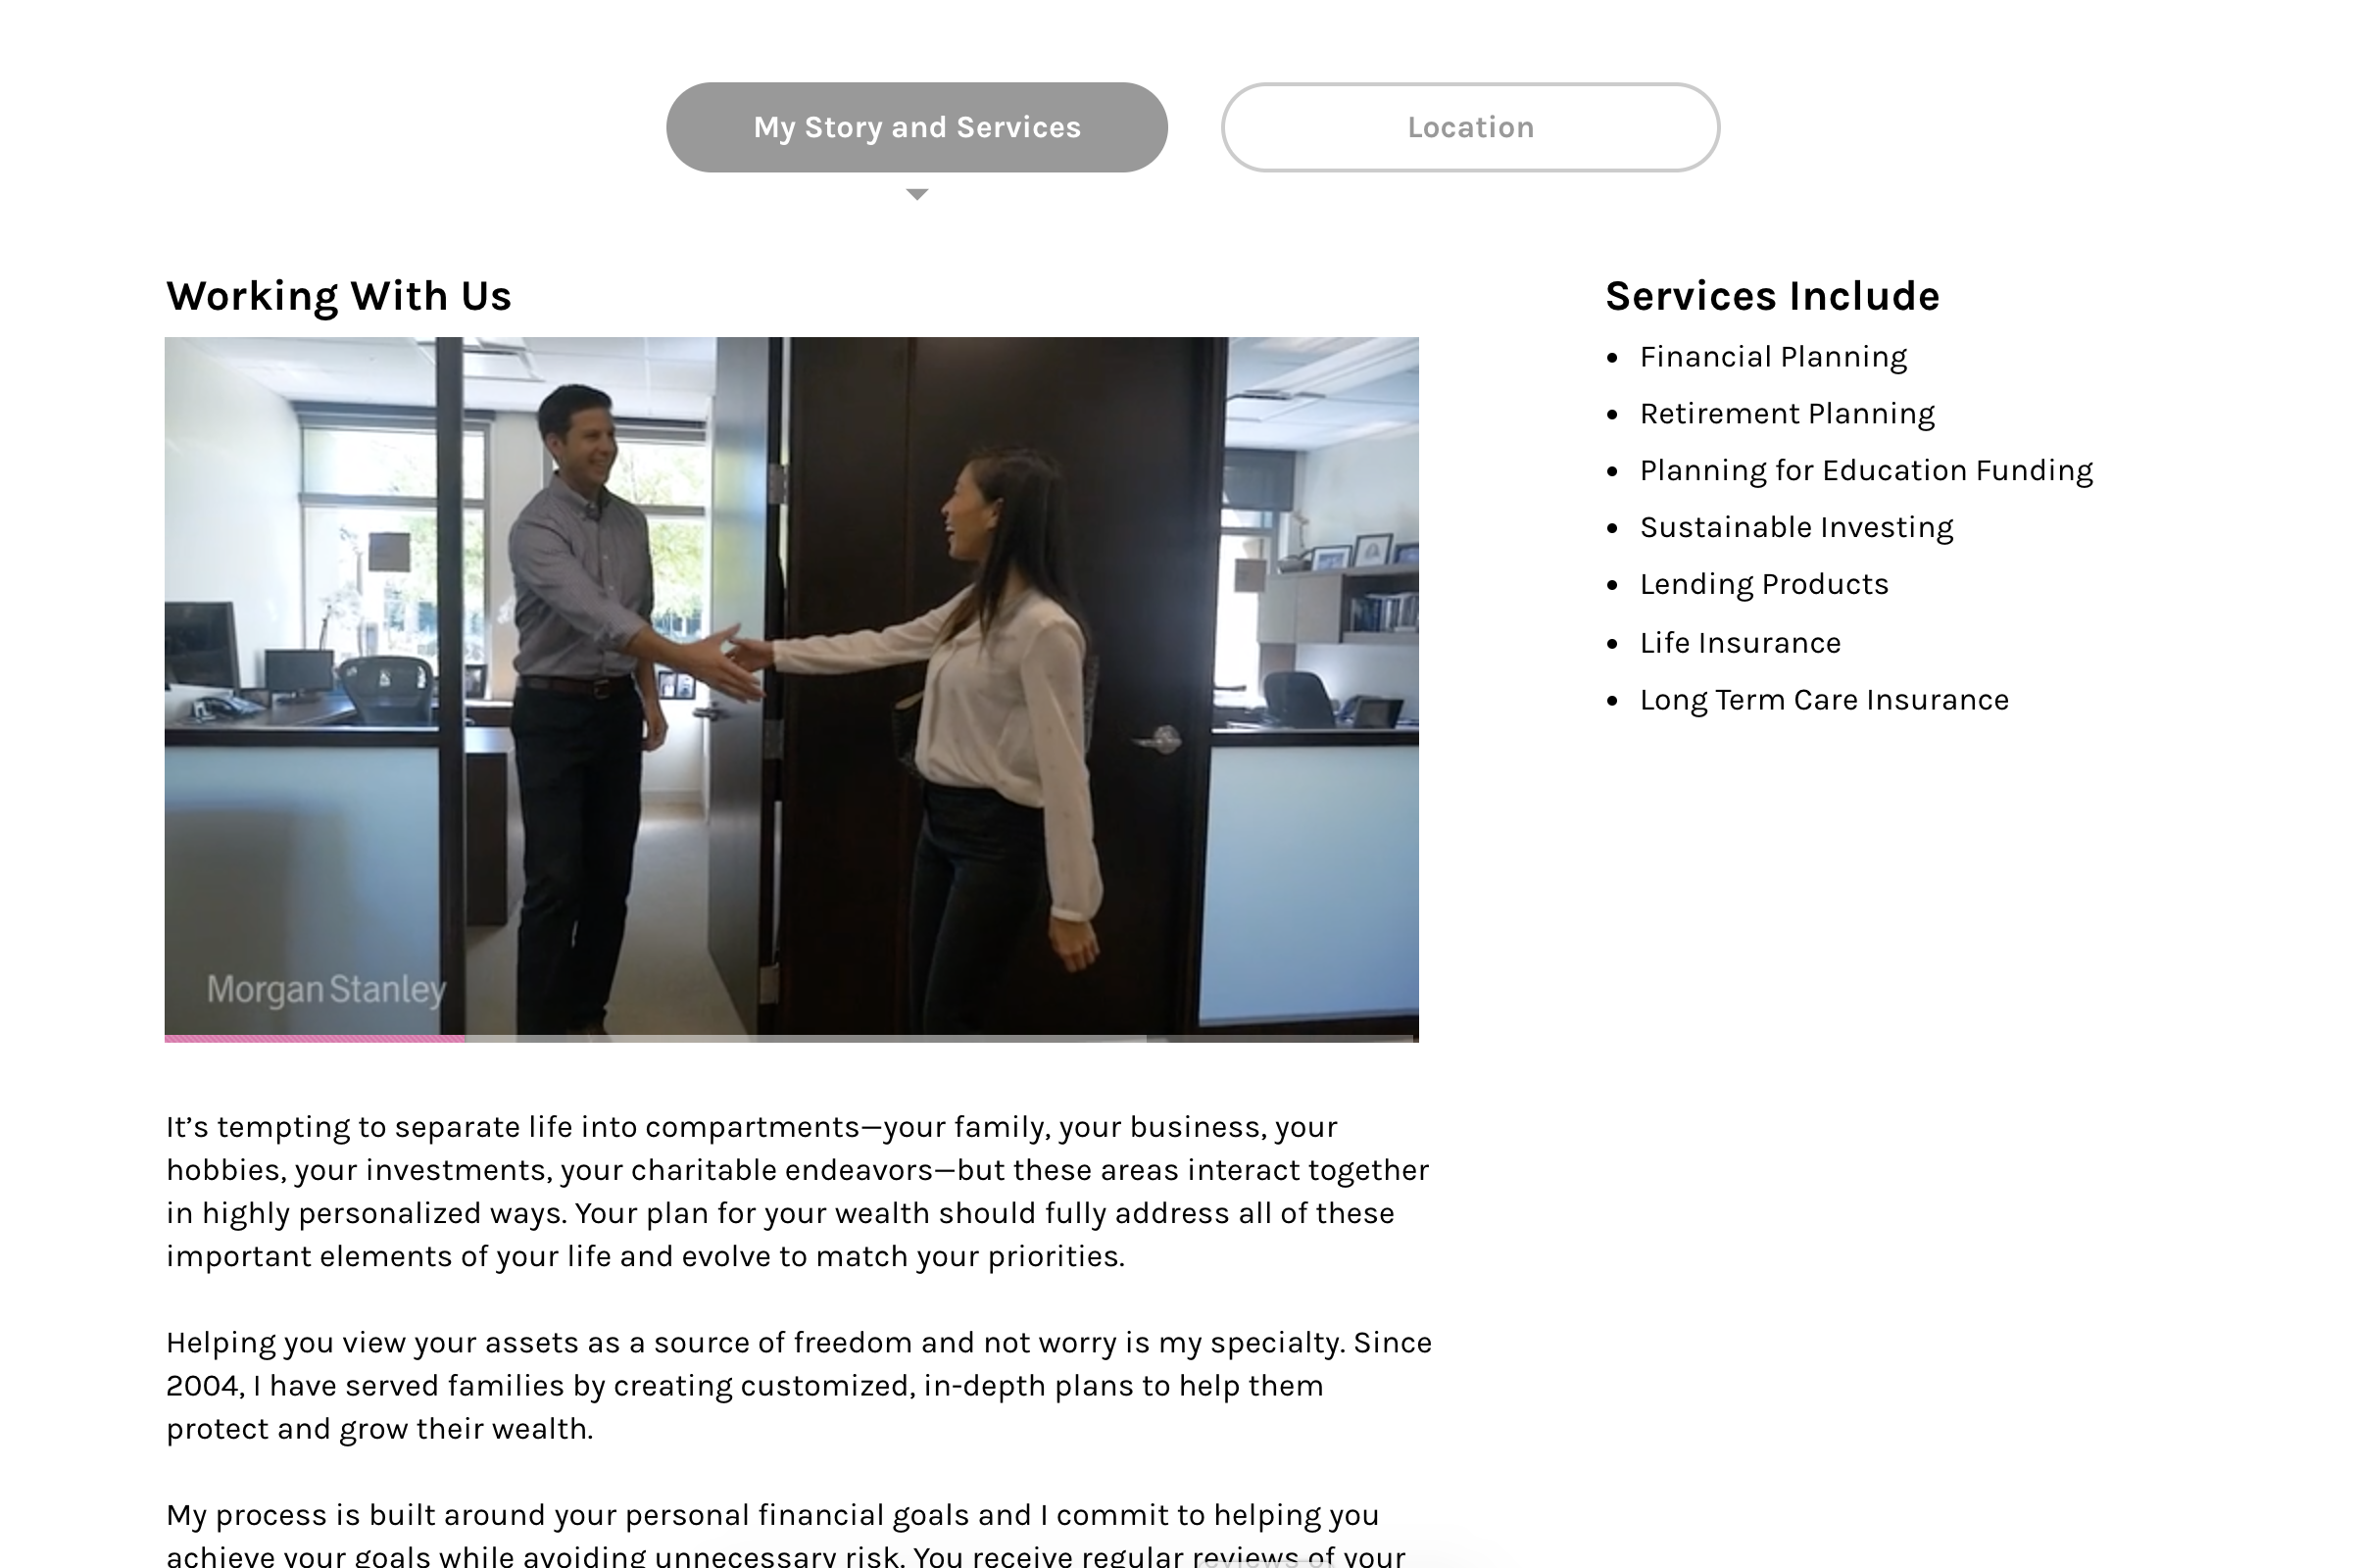 David is leveraging his brand video on his services landing page…